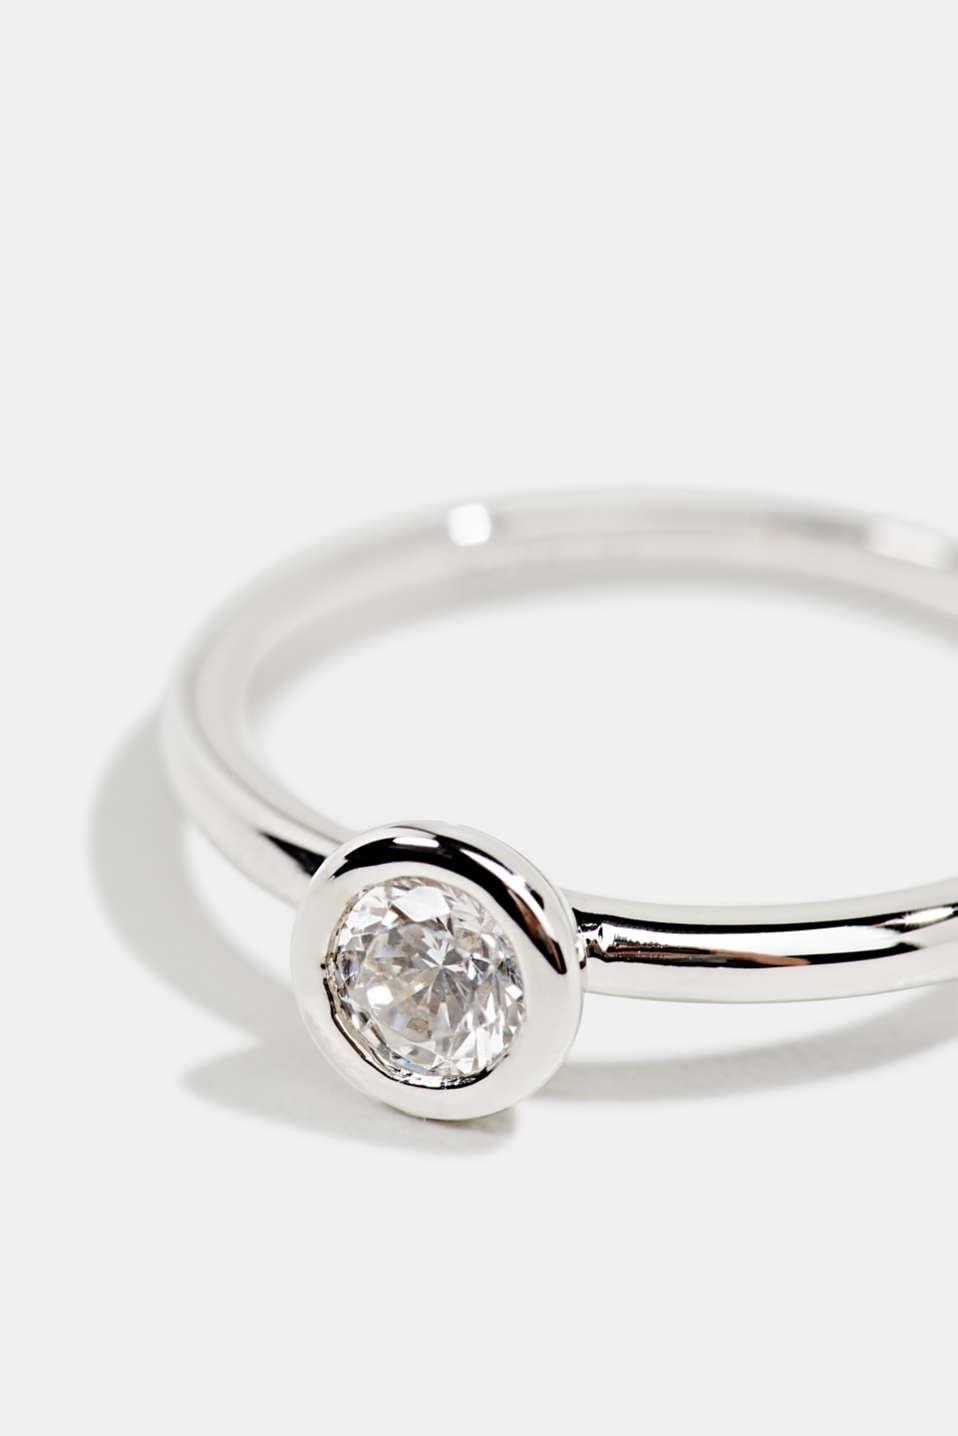 Stainless-steel ring trimmed with zirconia, LCSILVER, detail image number 1